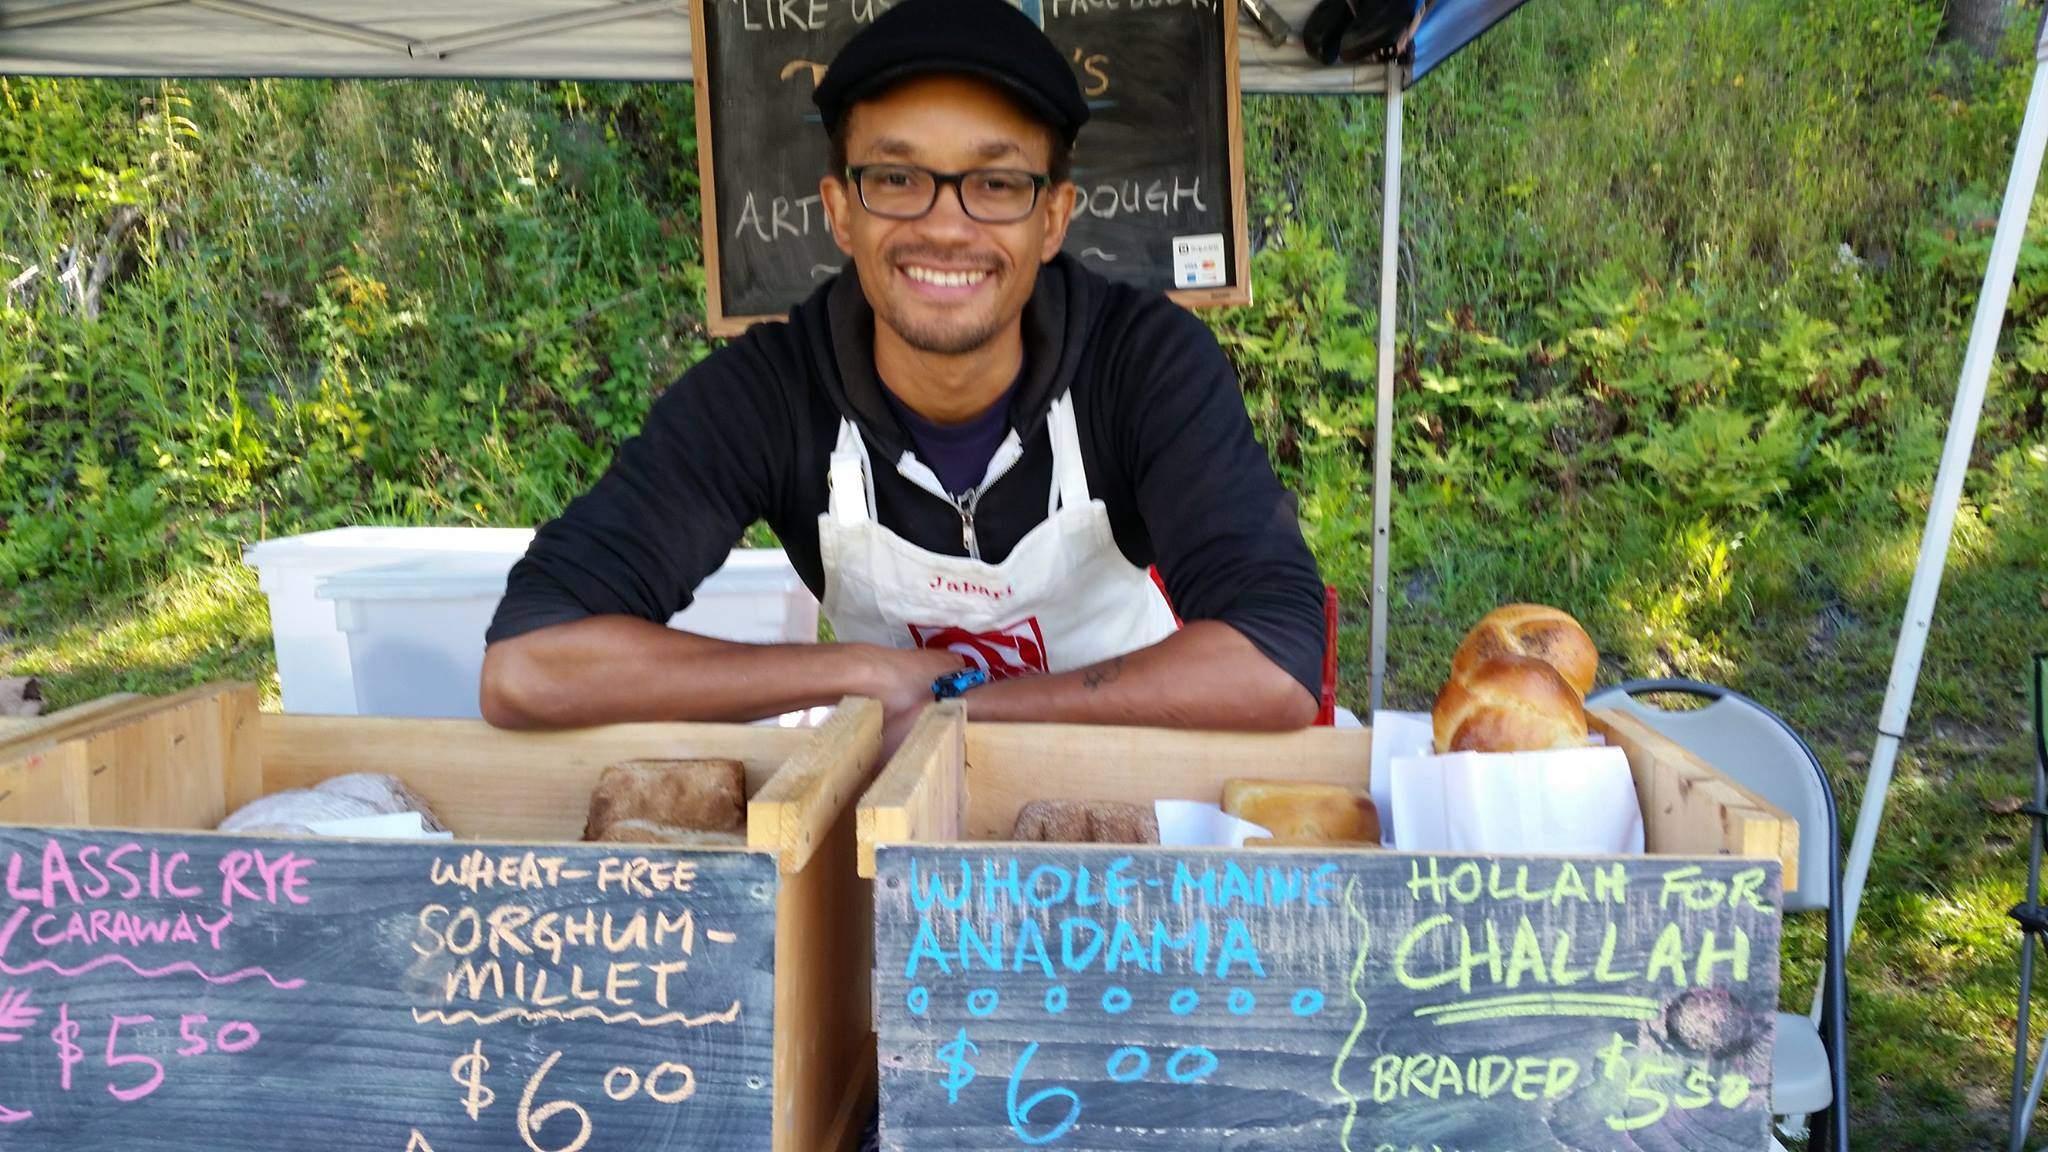 Jabari Jones smiles as he leans over crates filled with fresh bread, at the farmer's market.